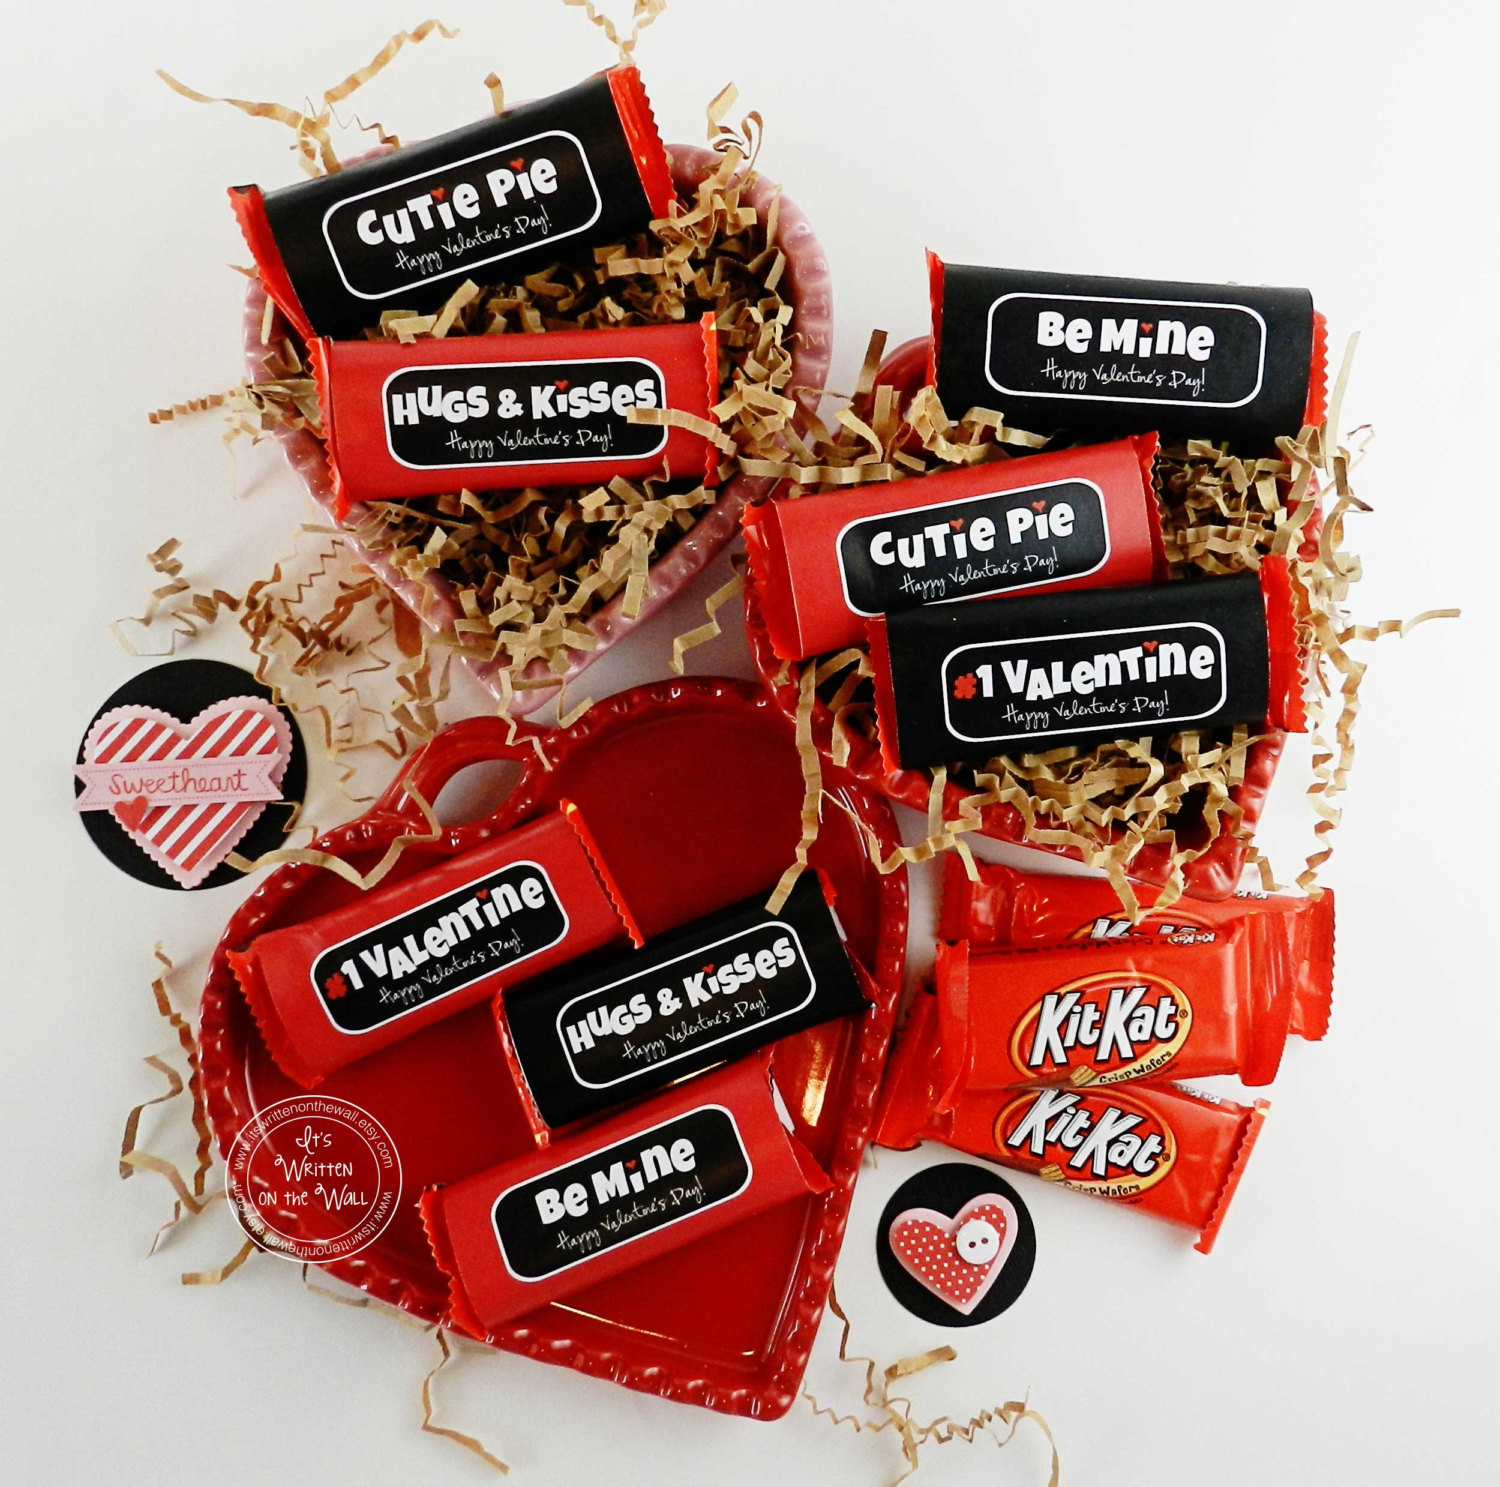 Wrap up some Snack Size Candy Bars for Valentine Treats